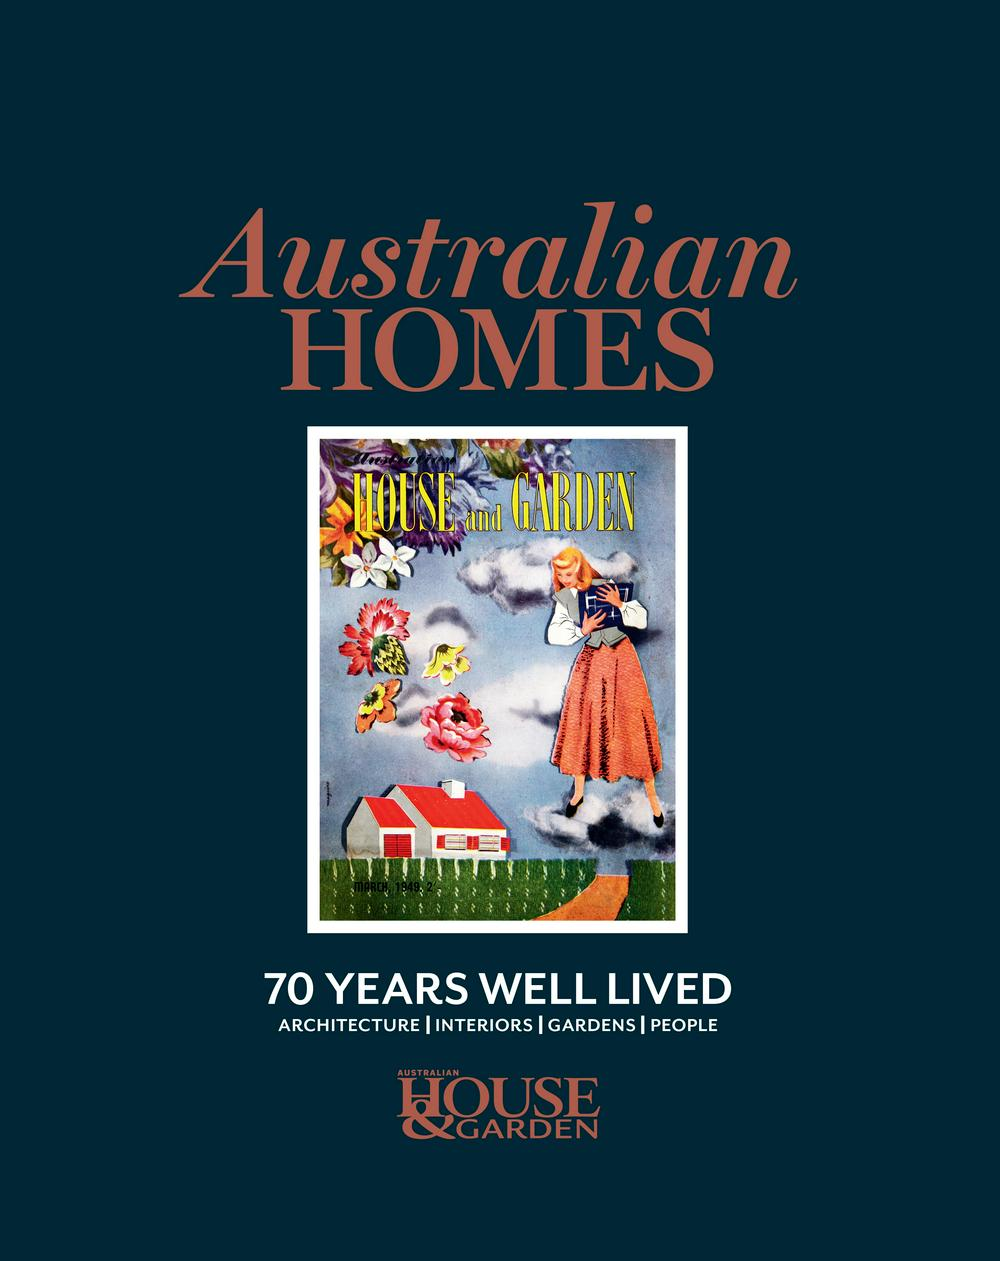 Australian House & Garden 70 Years A Life Well Lived